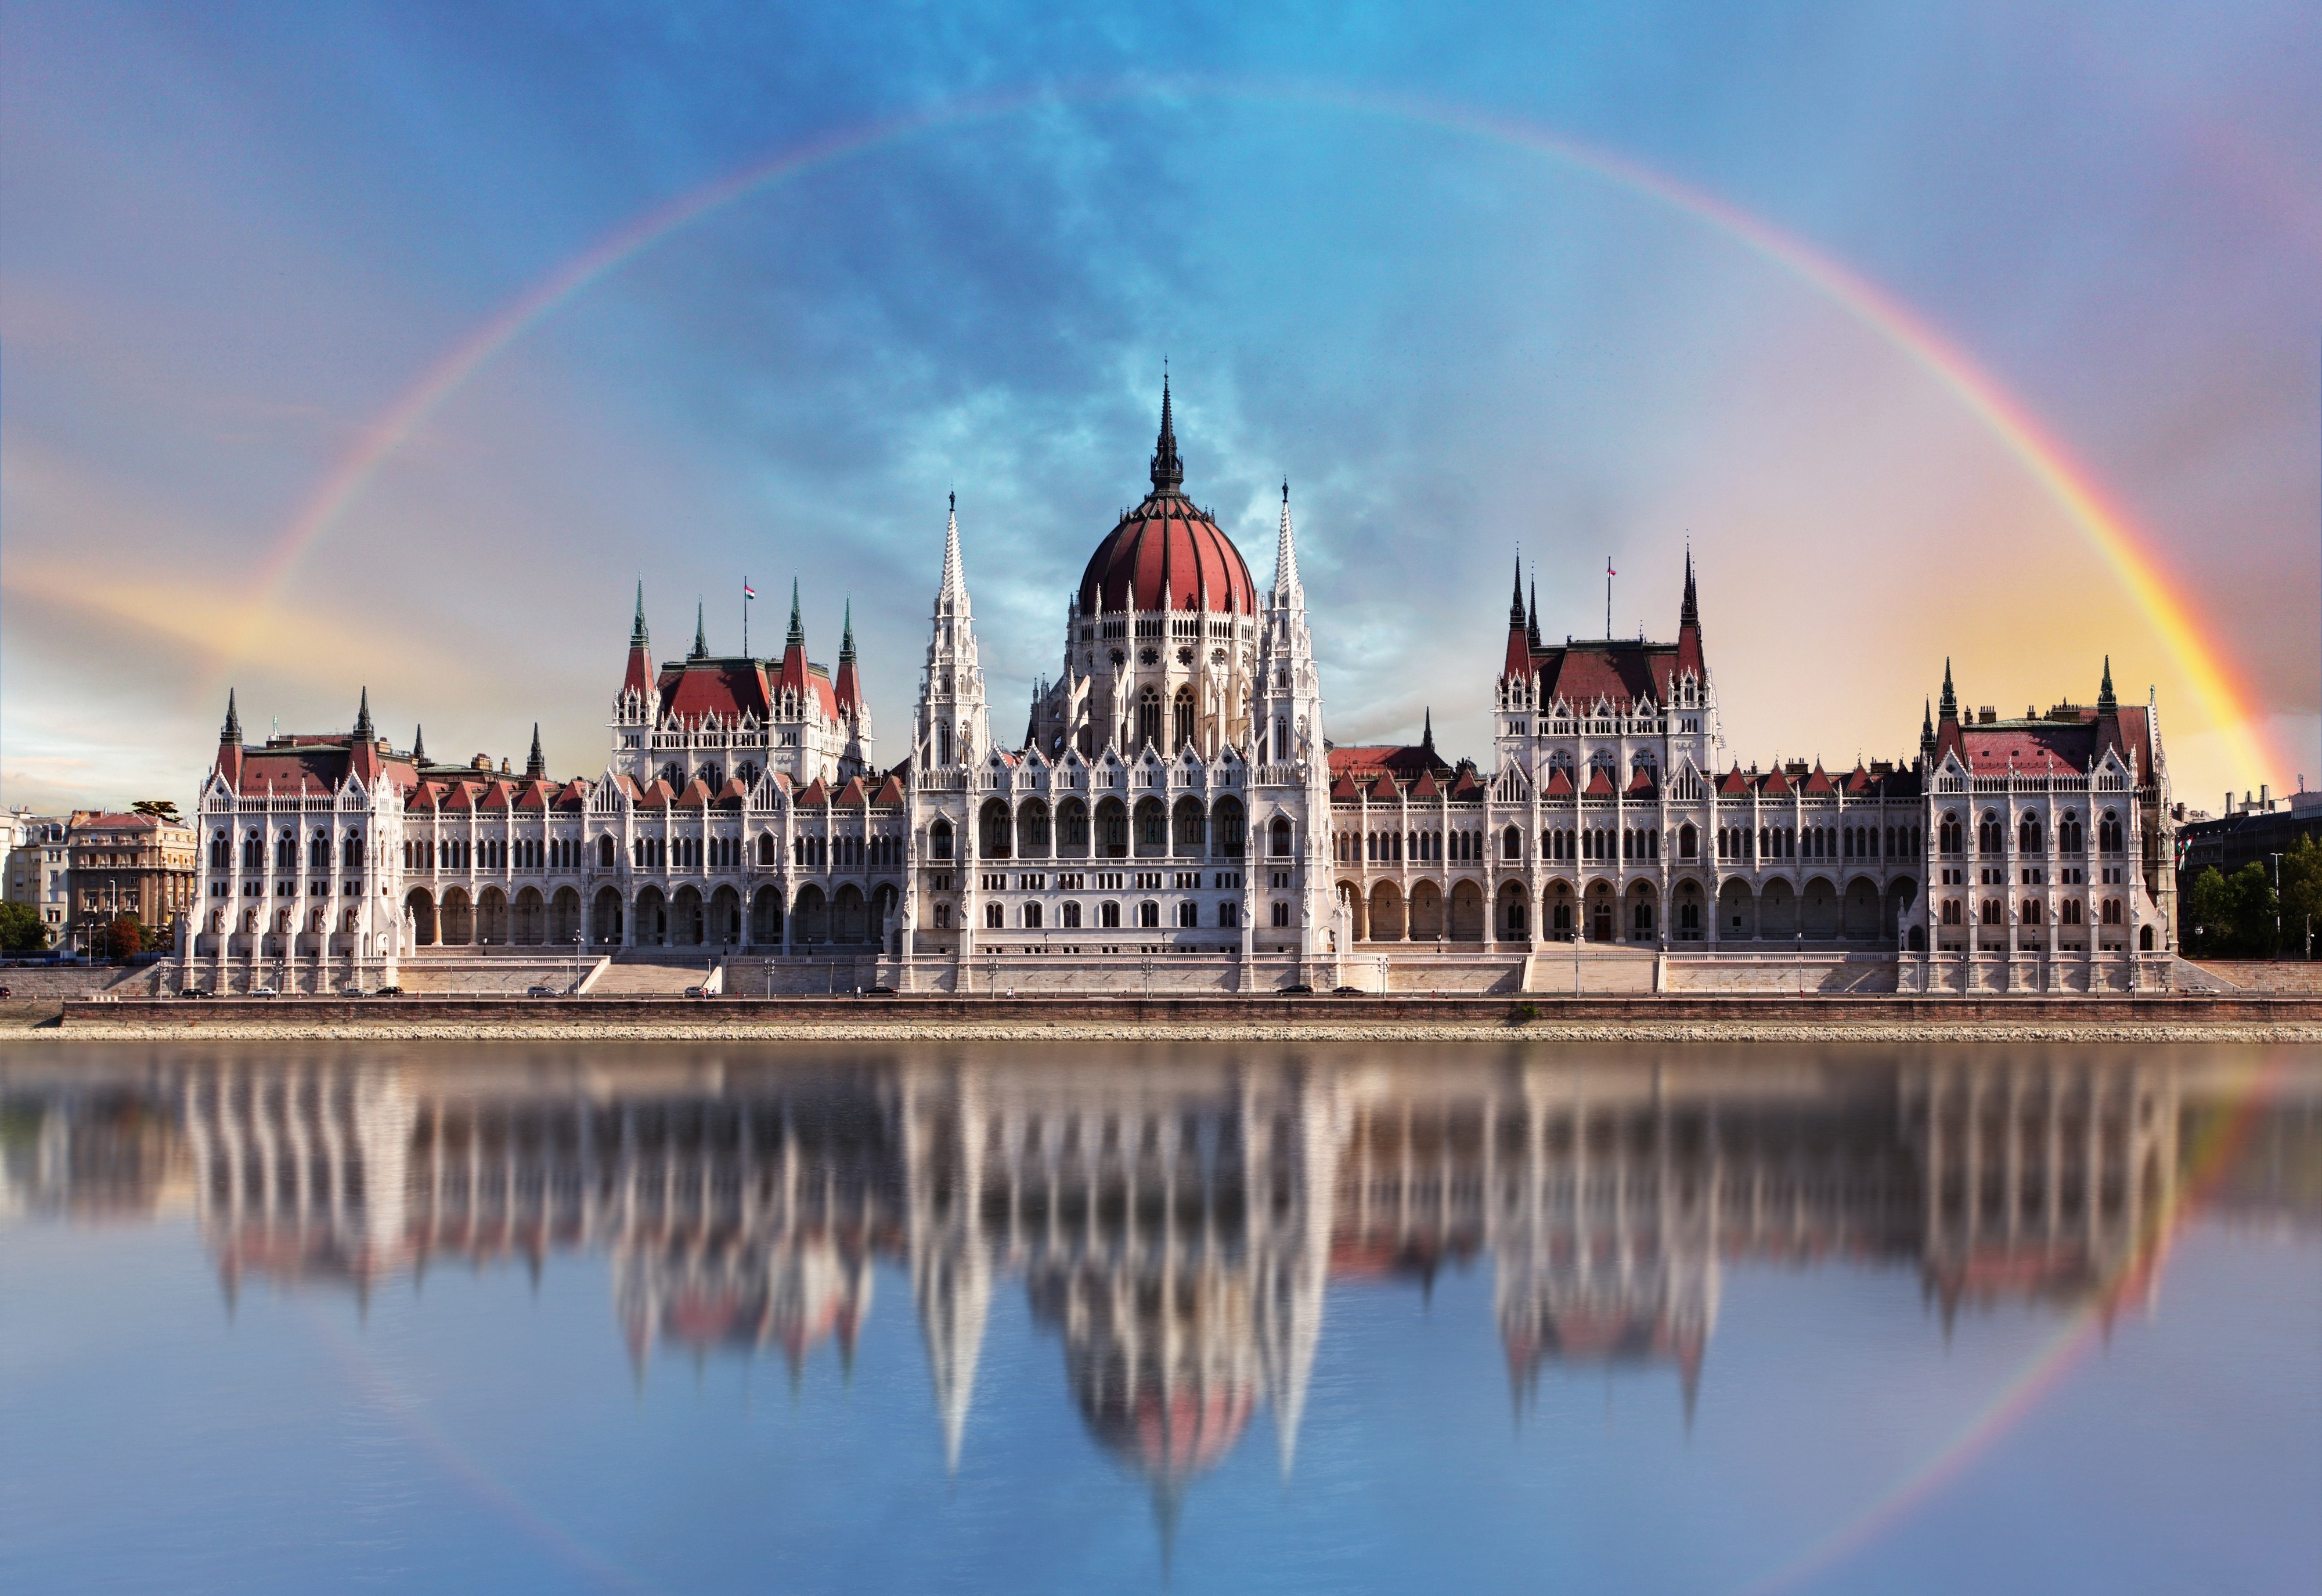 17 Hungarian Parliament Building HD Wallpapers | Backgrounds ...